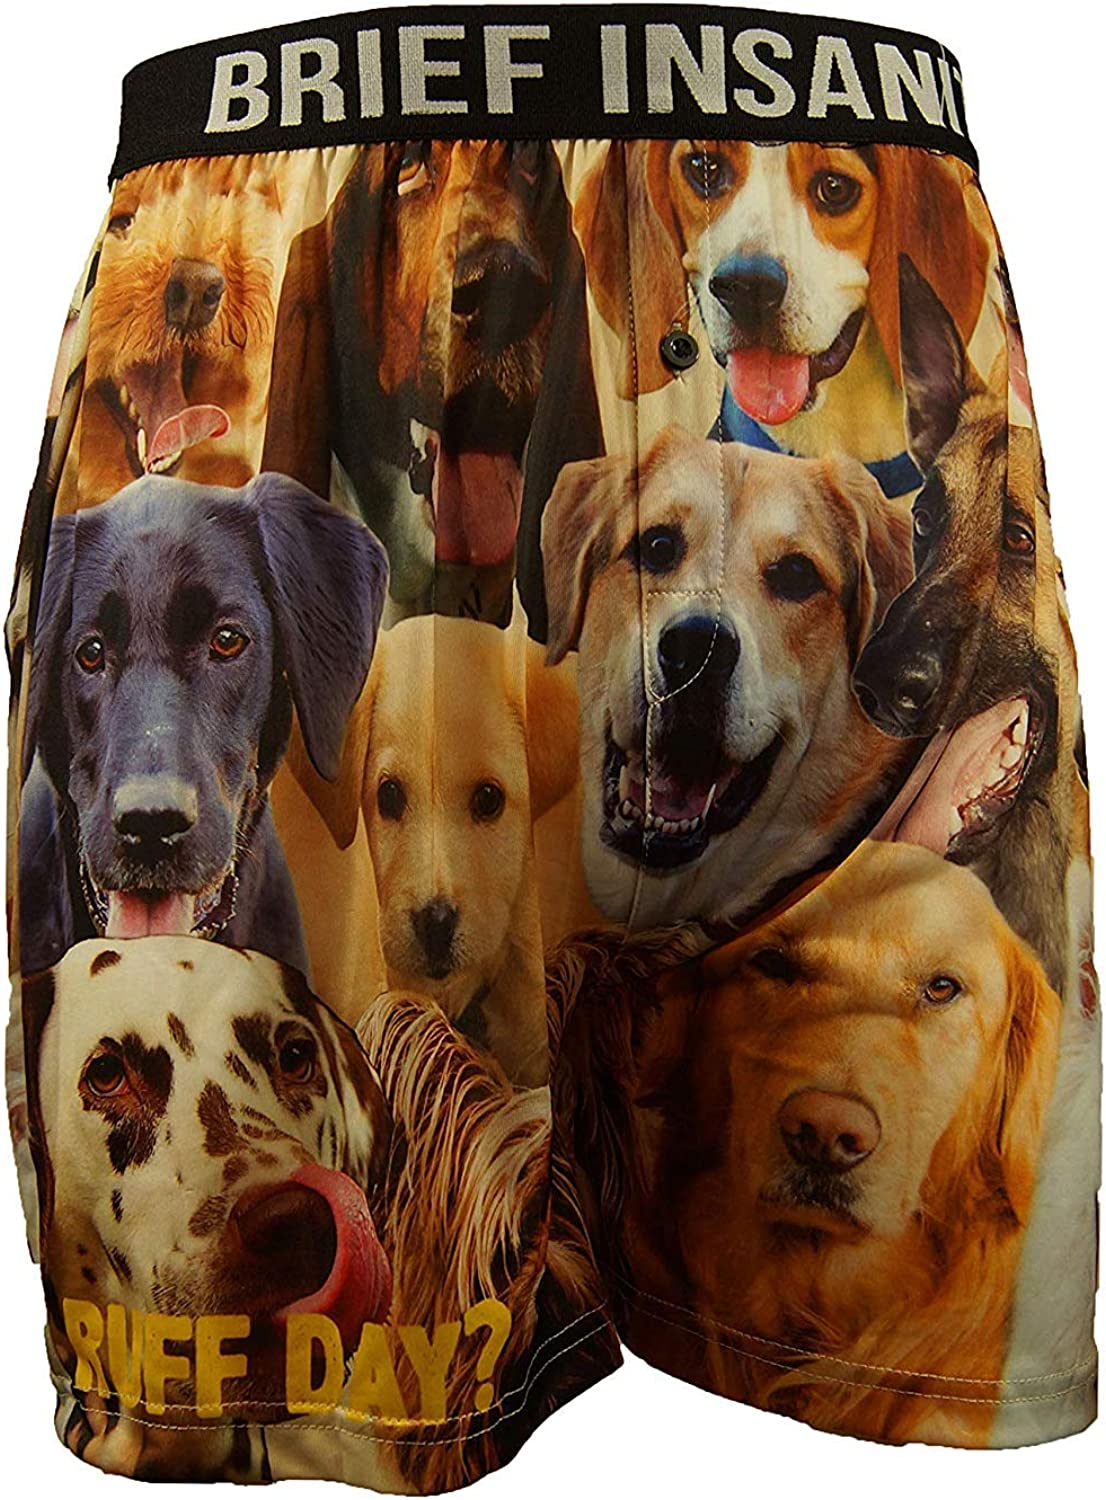 BRIEF INSANITY Dog Boxer Briefs for Men and Women   Animal Puppy Print Boxer Shorts - Funny, Humorous, Novelty Underwear